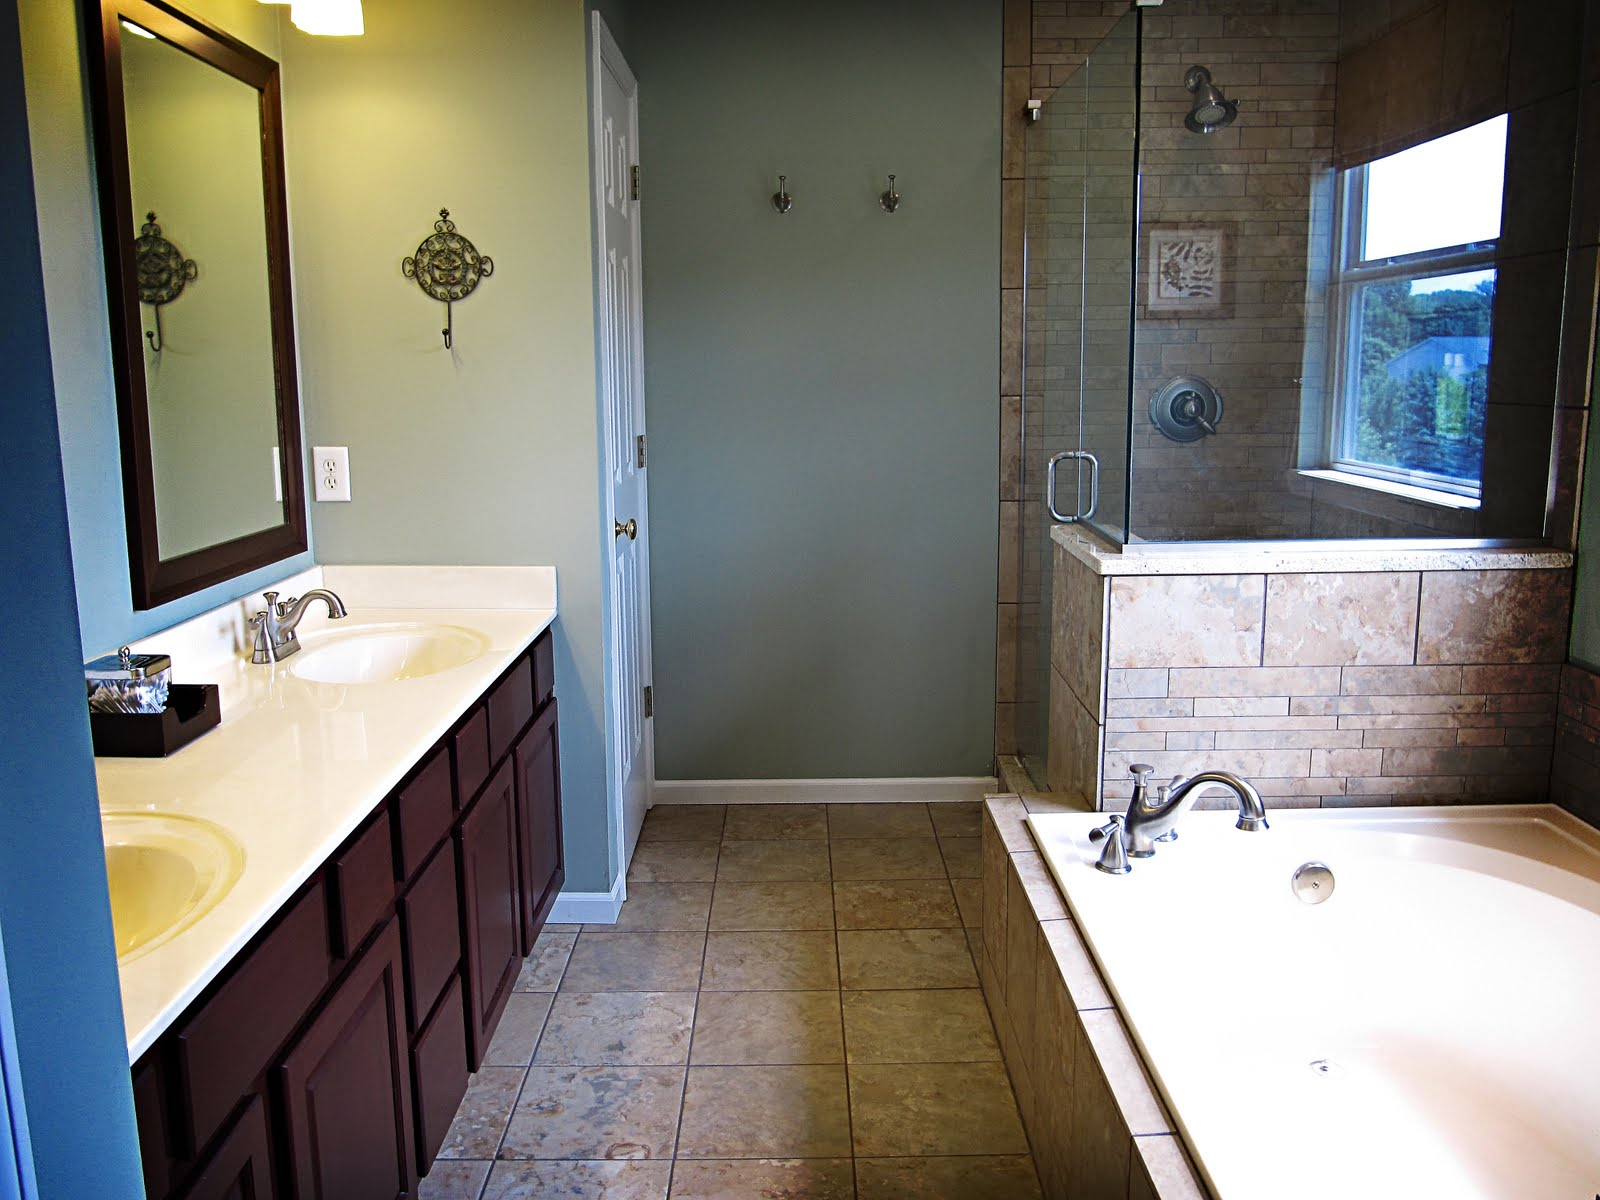 Remodelaholic 6 12 11 6 19 11 for Bathroom renovation before and after